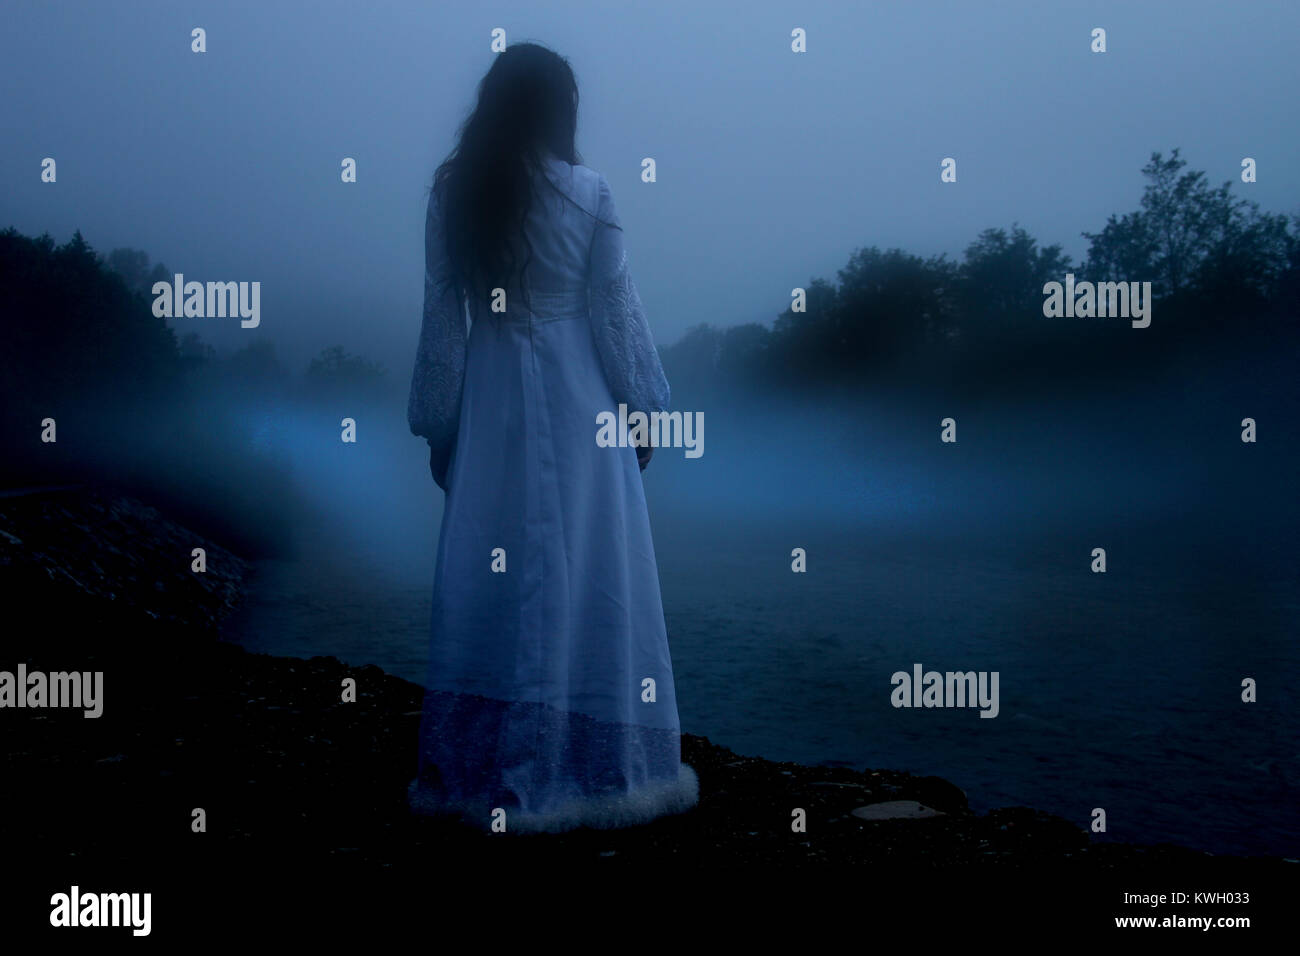 Mysterious Woman in White Dress - Stock Image